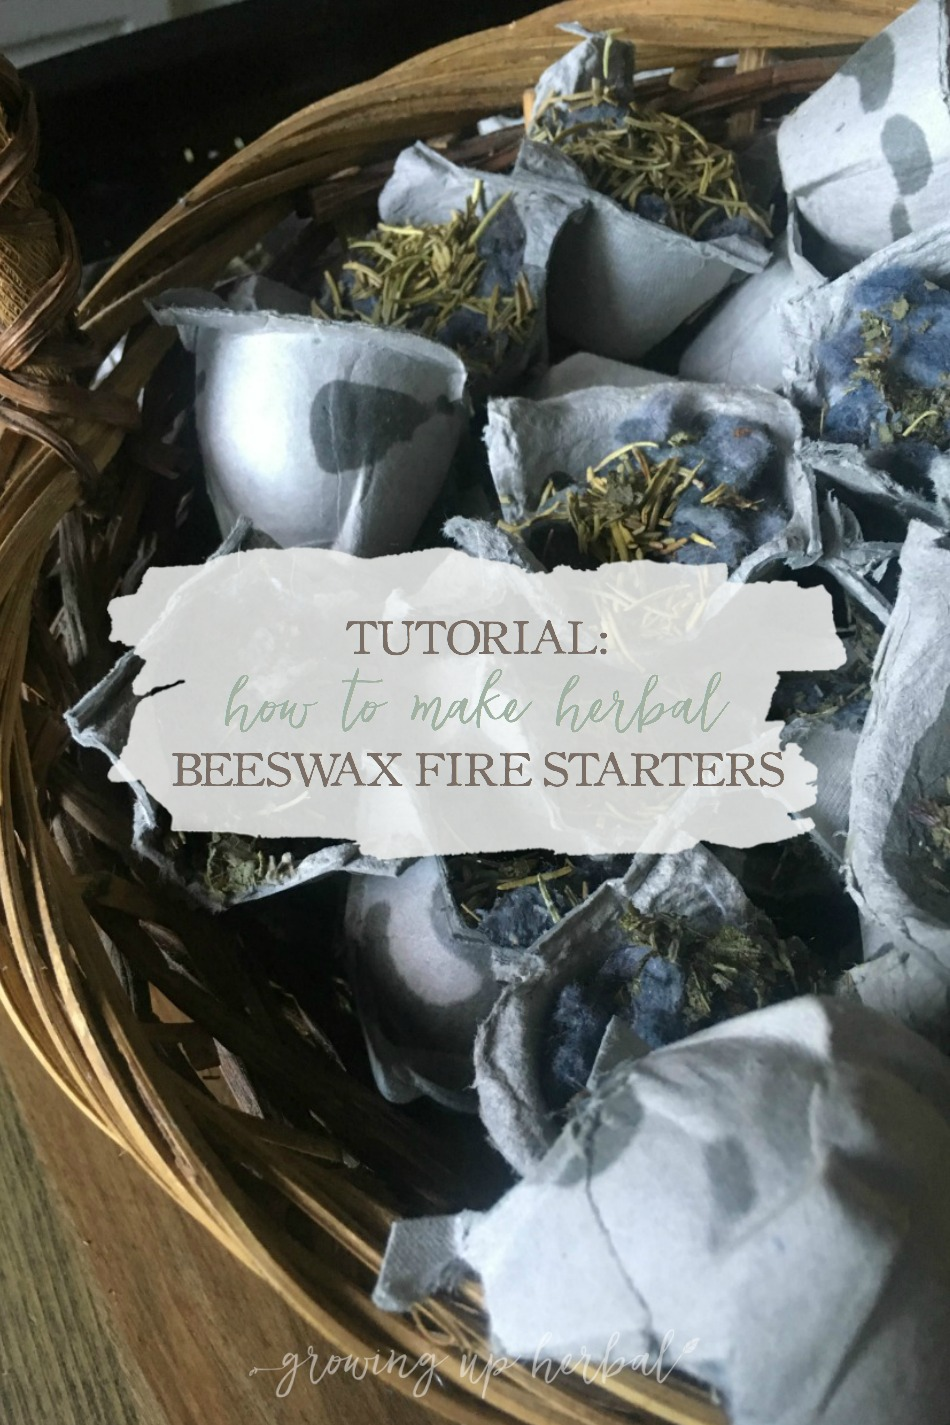 How To Make Herbal Beeswax Fire Starters | Growing Up Herbal | These herbal fire starters are easy to create and make starting fires much easier. Learn how to make them here!